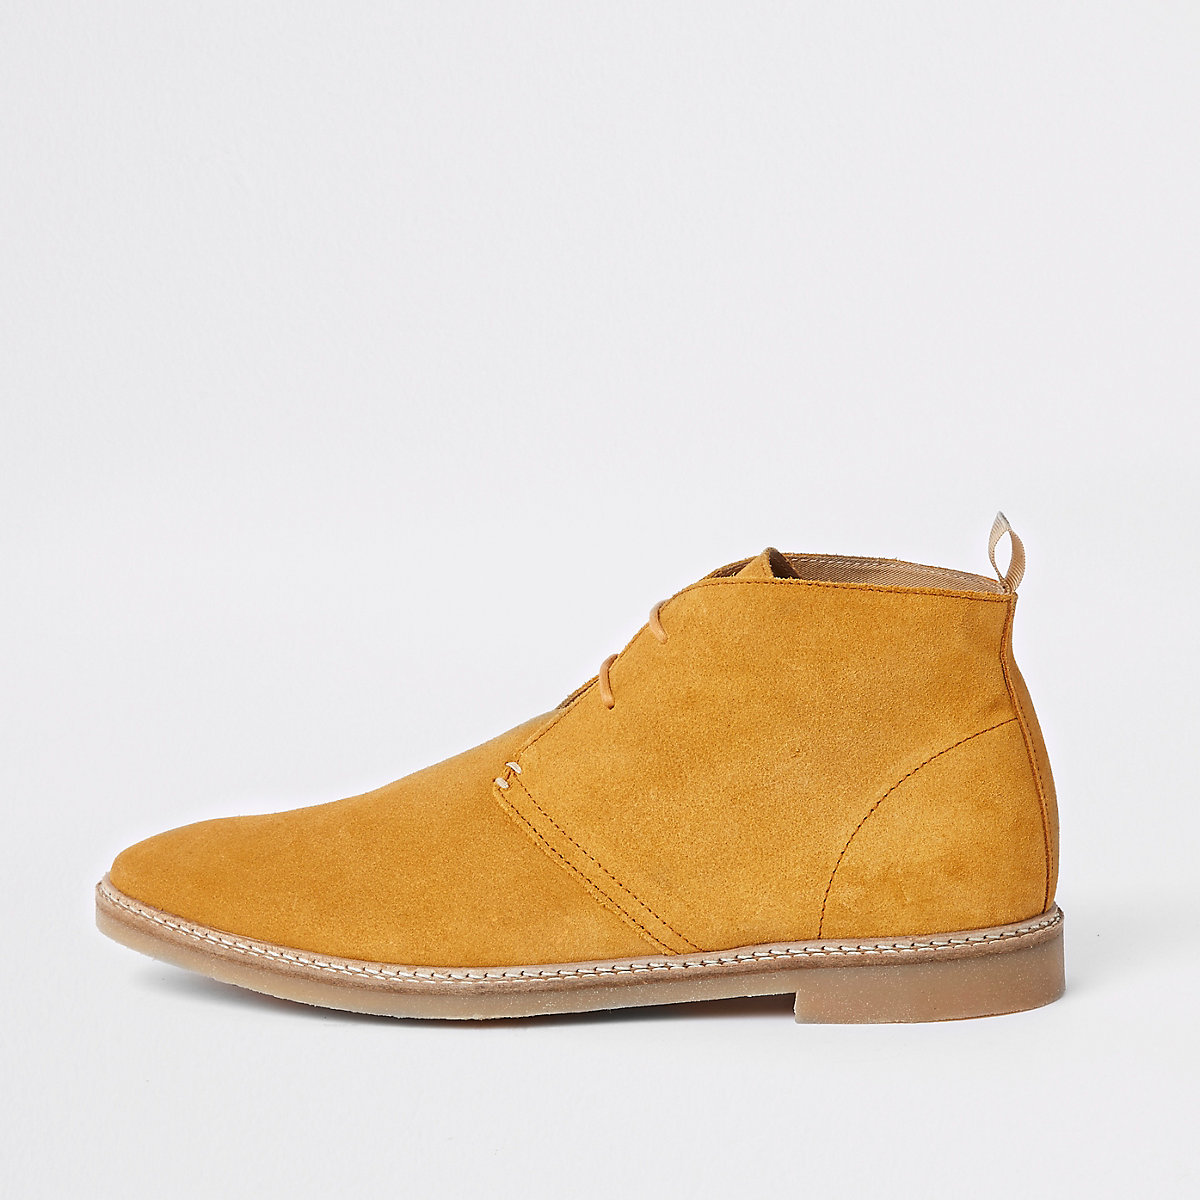 Yellow suede eyelet desert boots